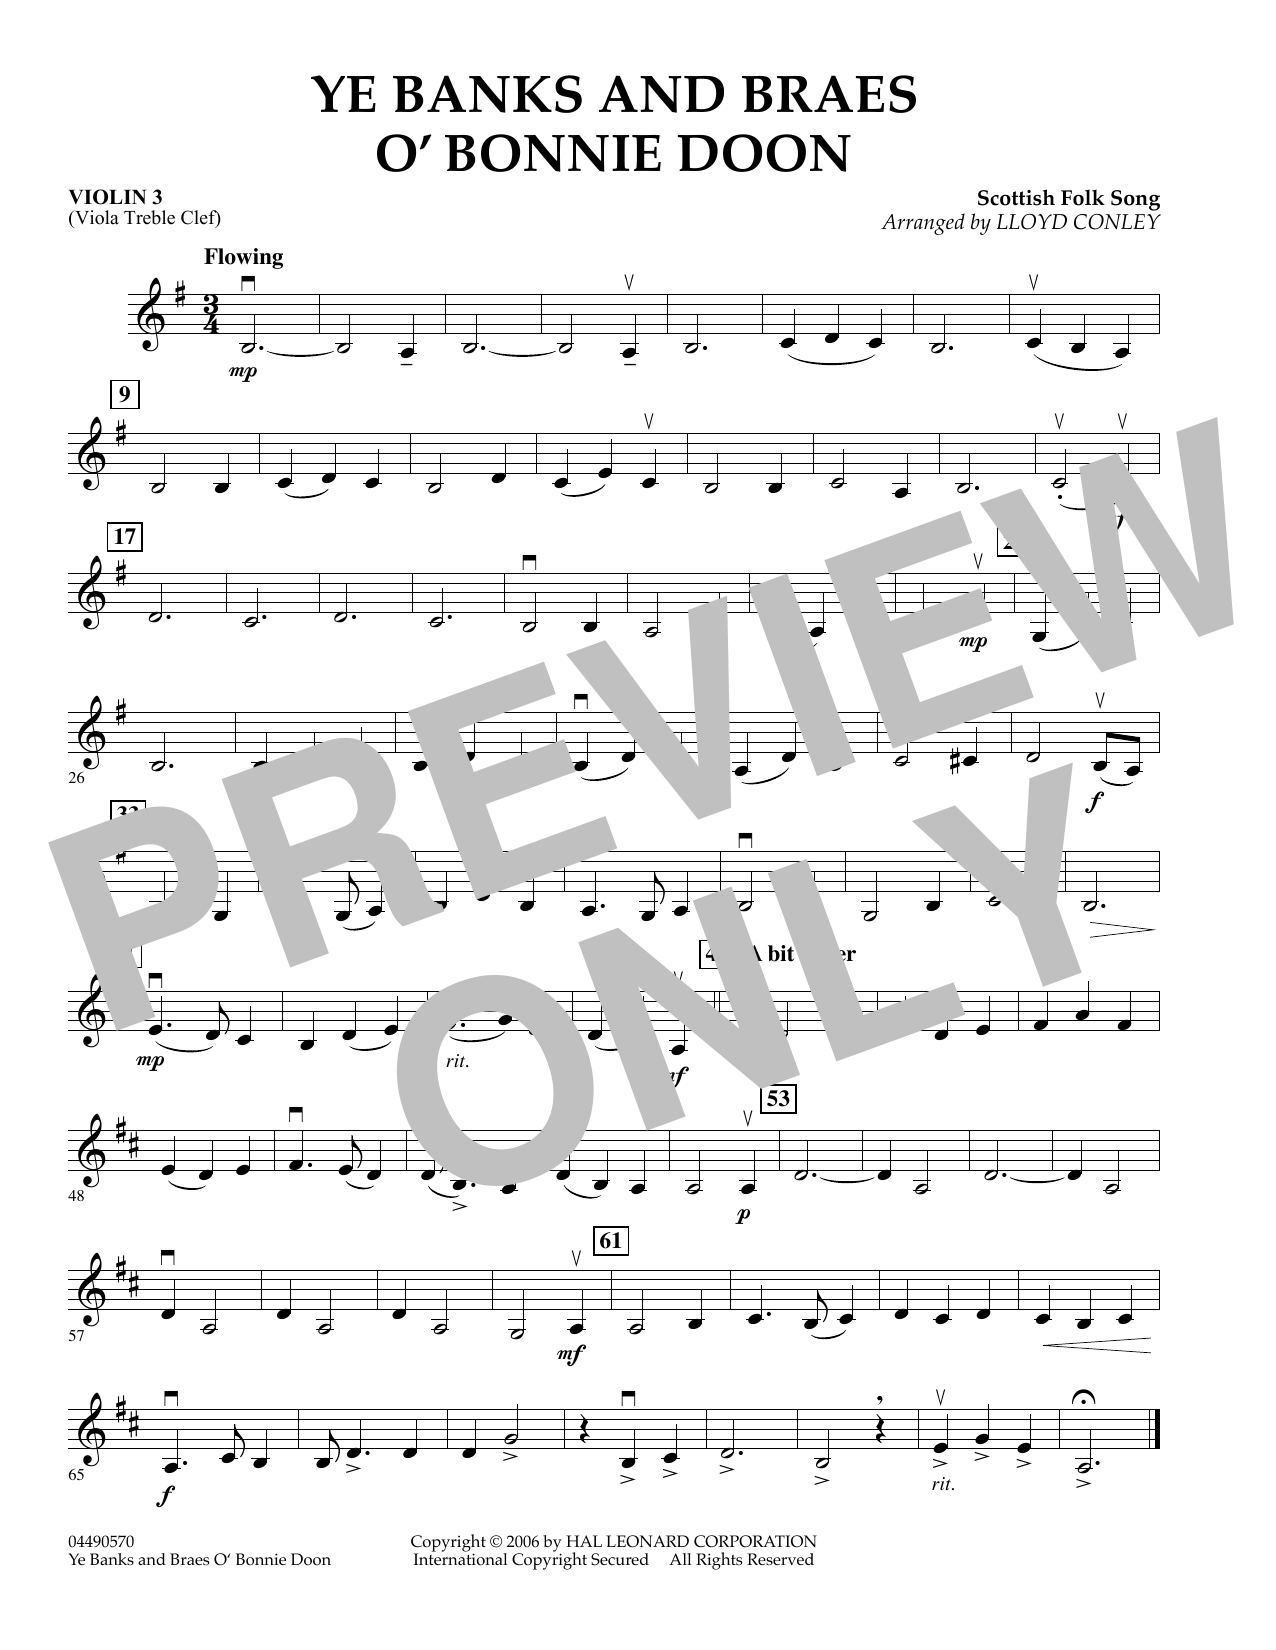 Lloyd Conley Ye Banks and Braes O' Bonnie Doon - Violin 3 (Viola Treble Clef) sheet music preview music notes and score for Orchestra including 1 page(s)